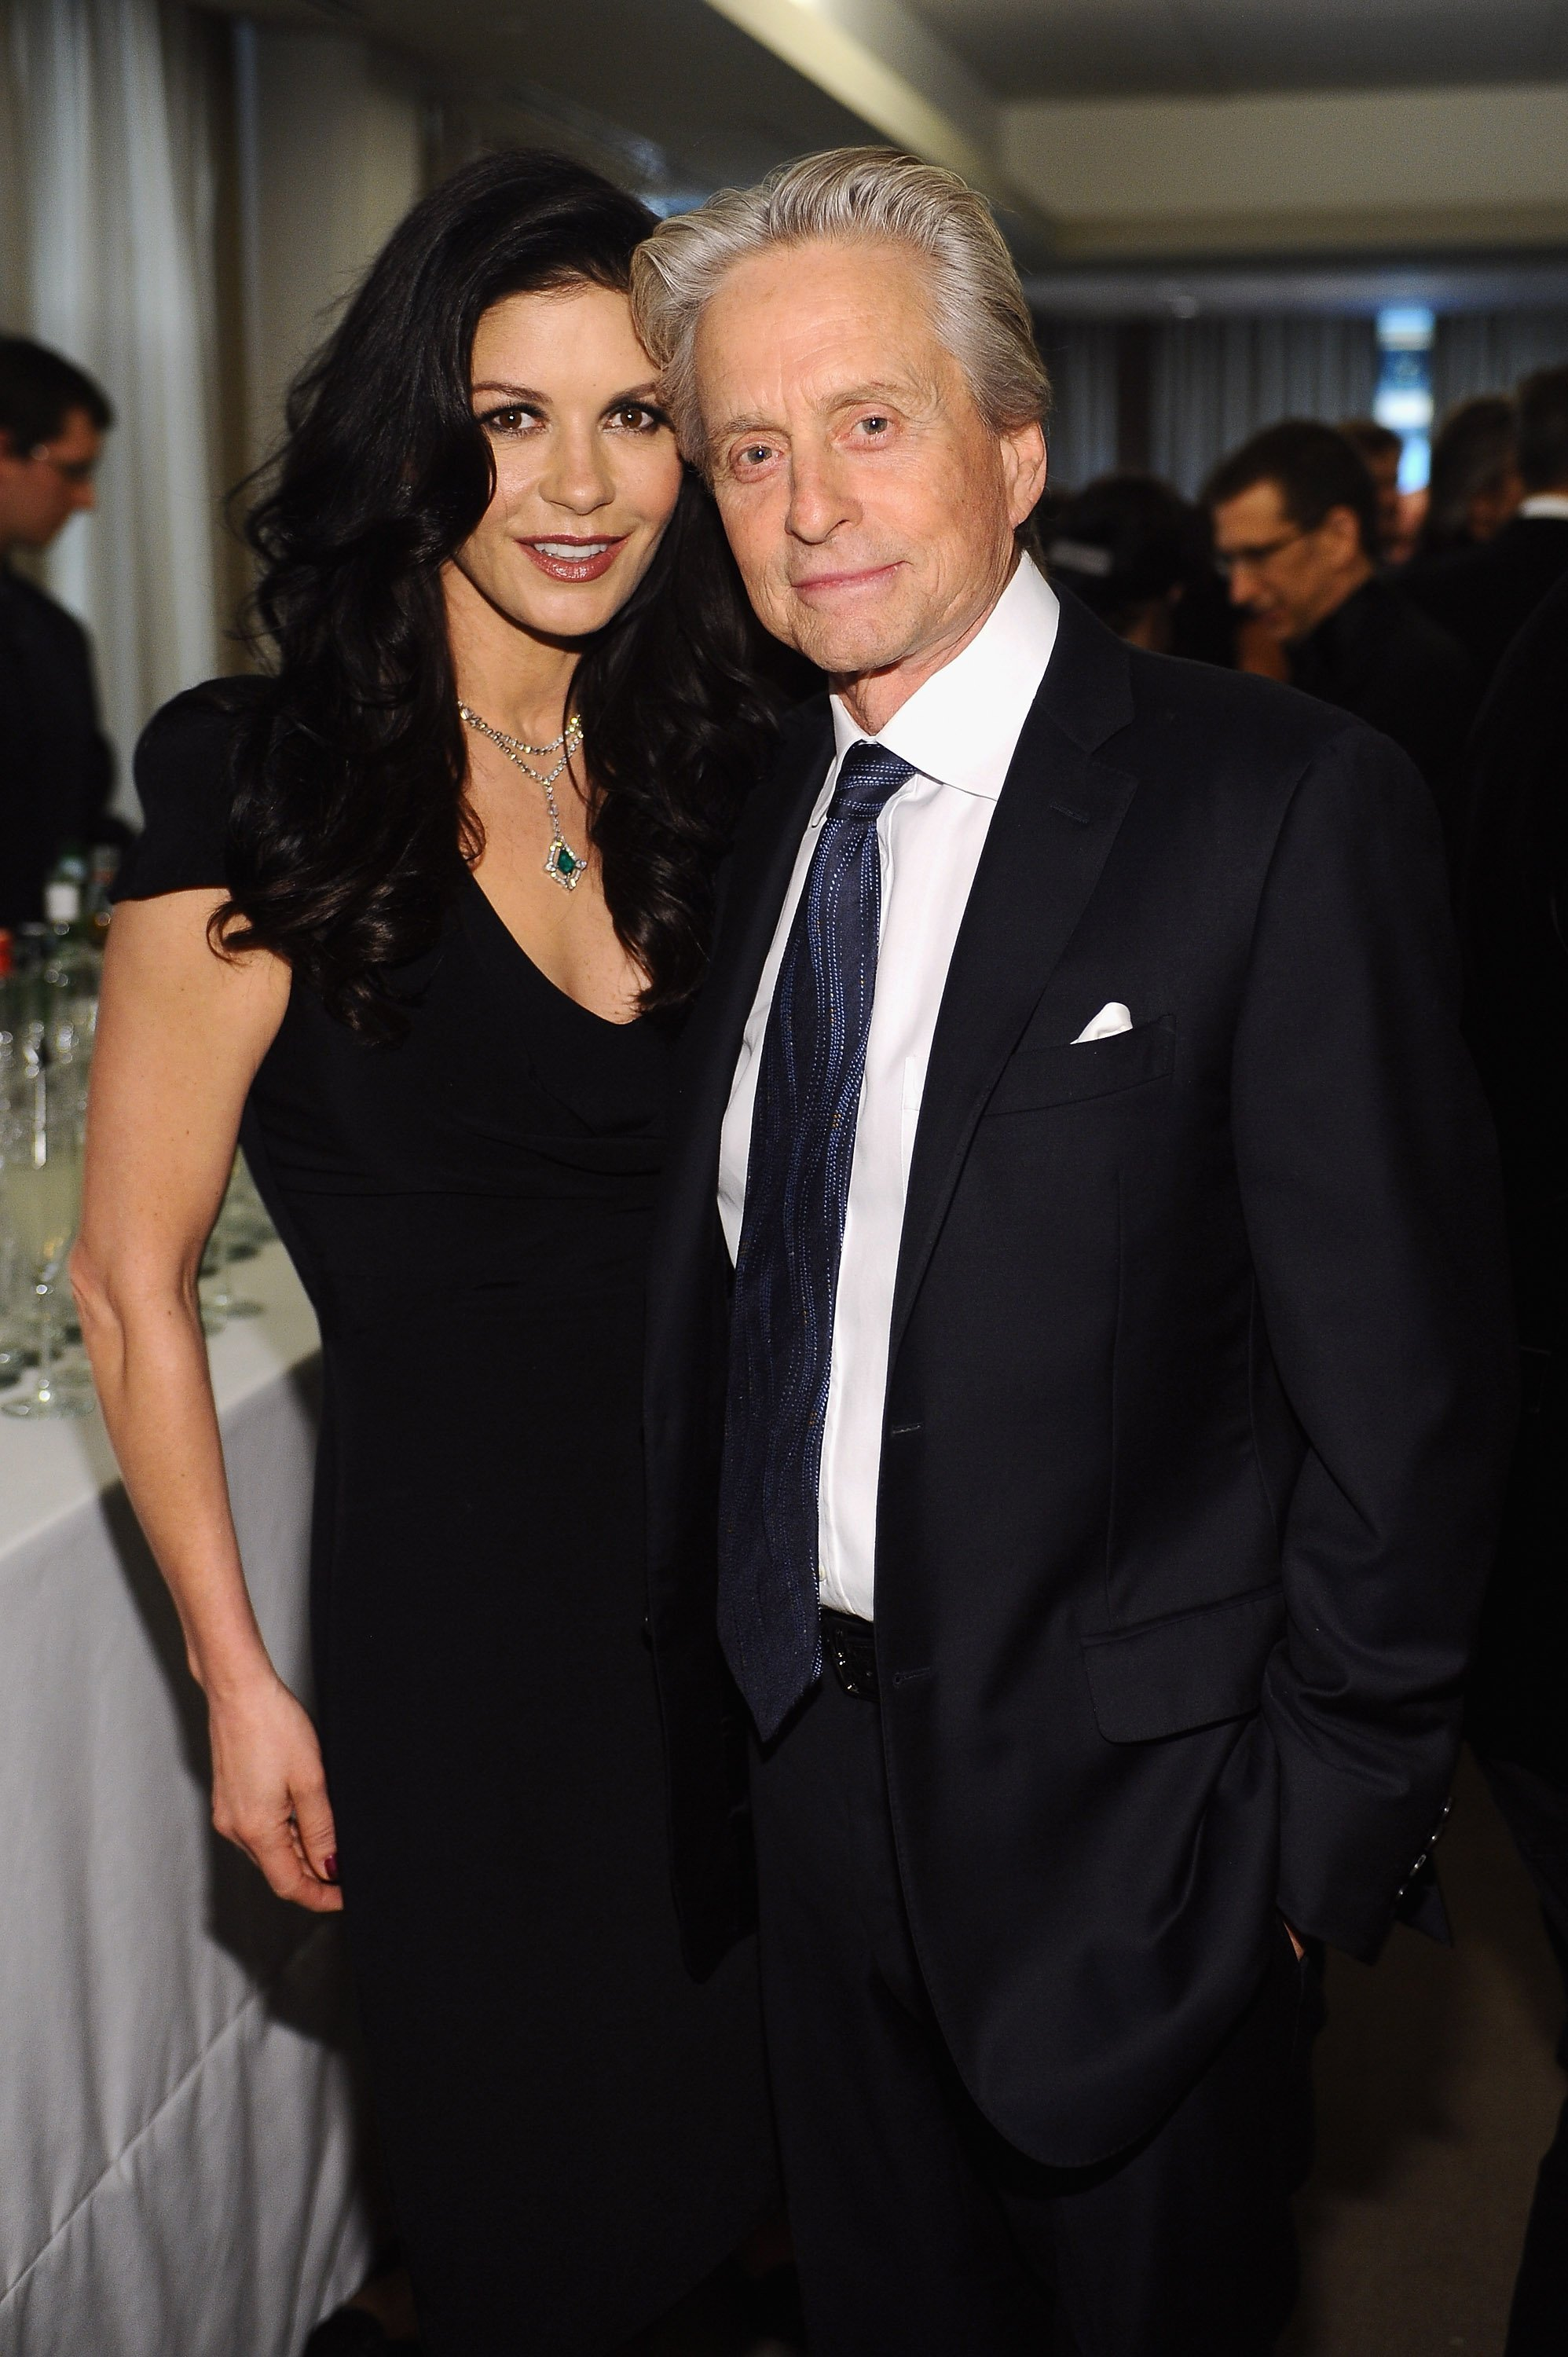 Michael Douglas and Catherine Zeta-Jones attend the reception of The Film Society of Lincoln Center's 40th Chaplin Award Gala | Source: Getty Images